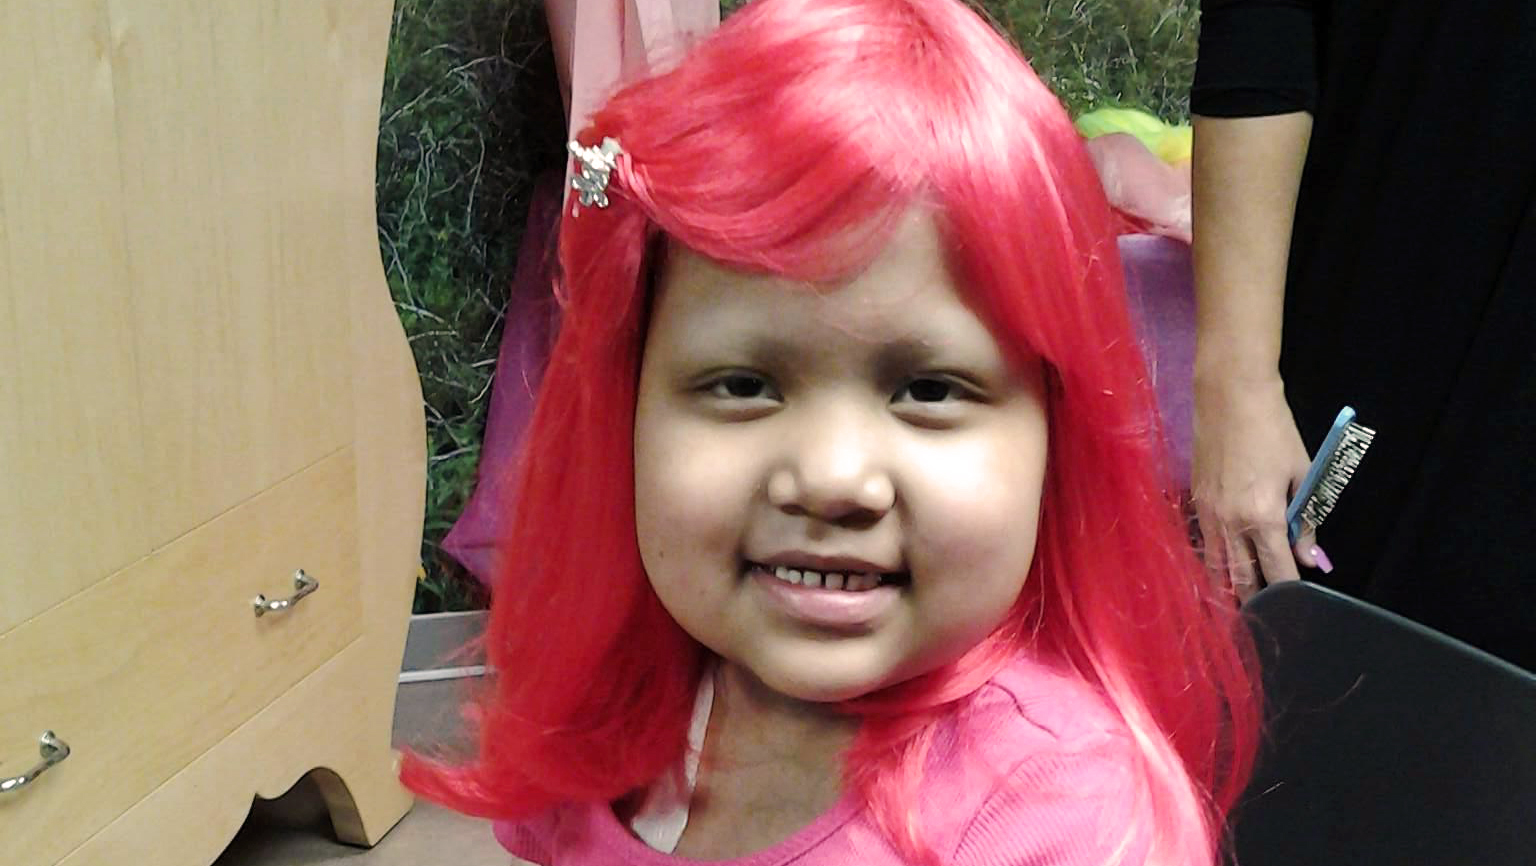 Girl with a bright pink wig poses for a photo